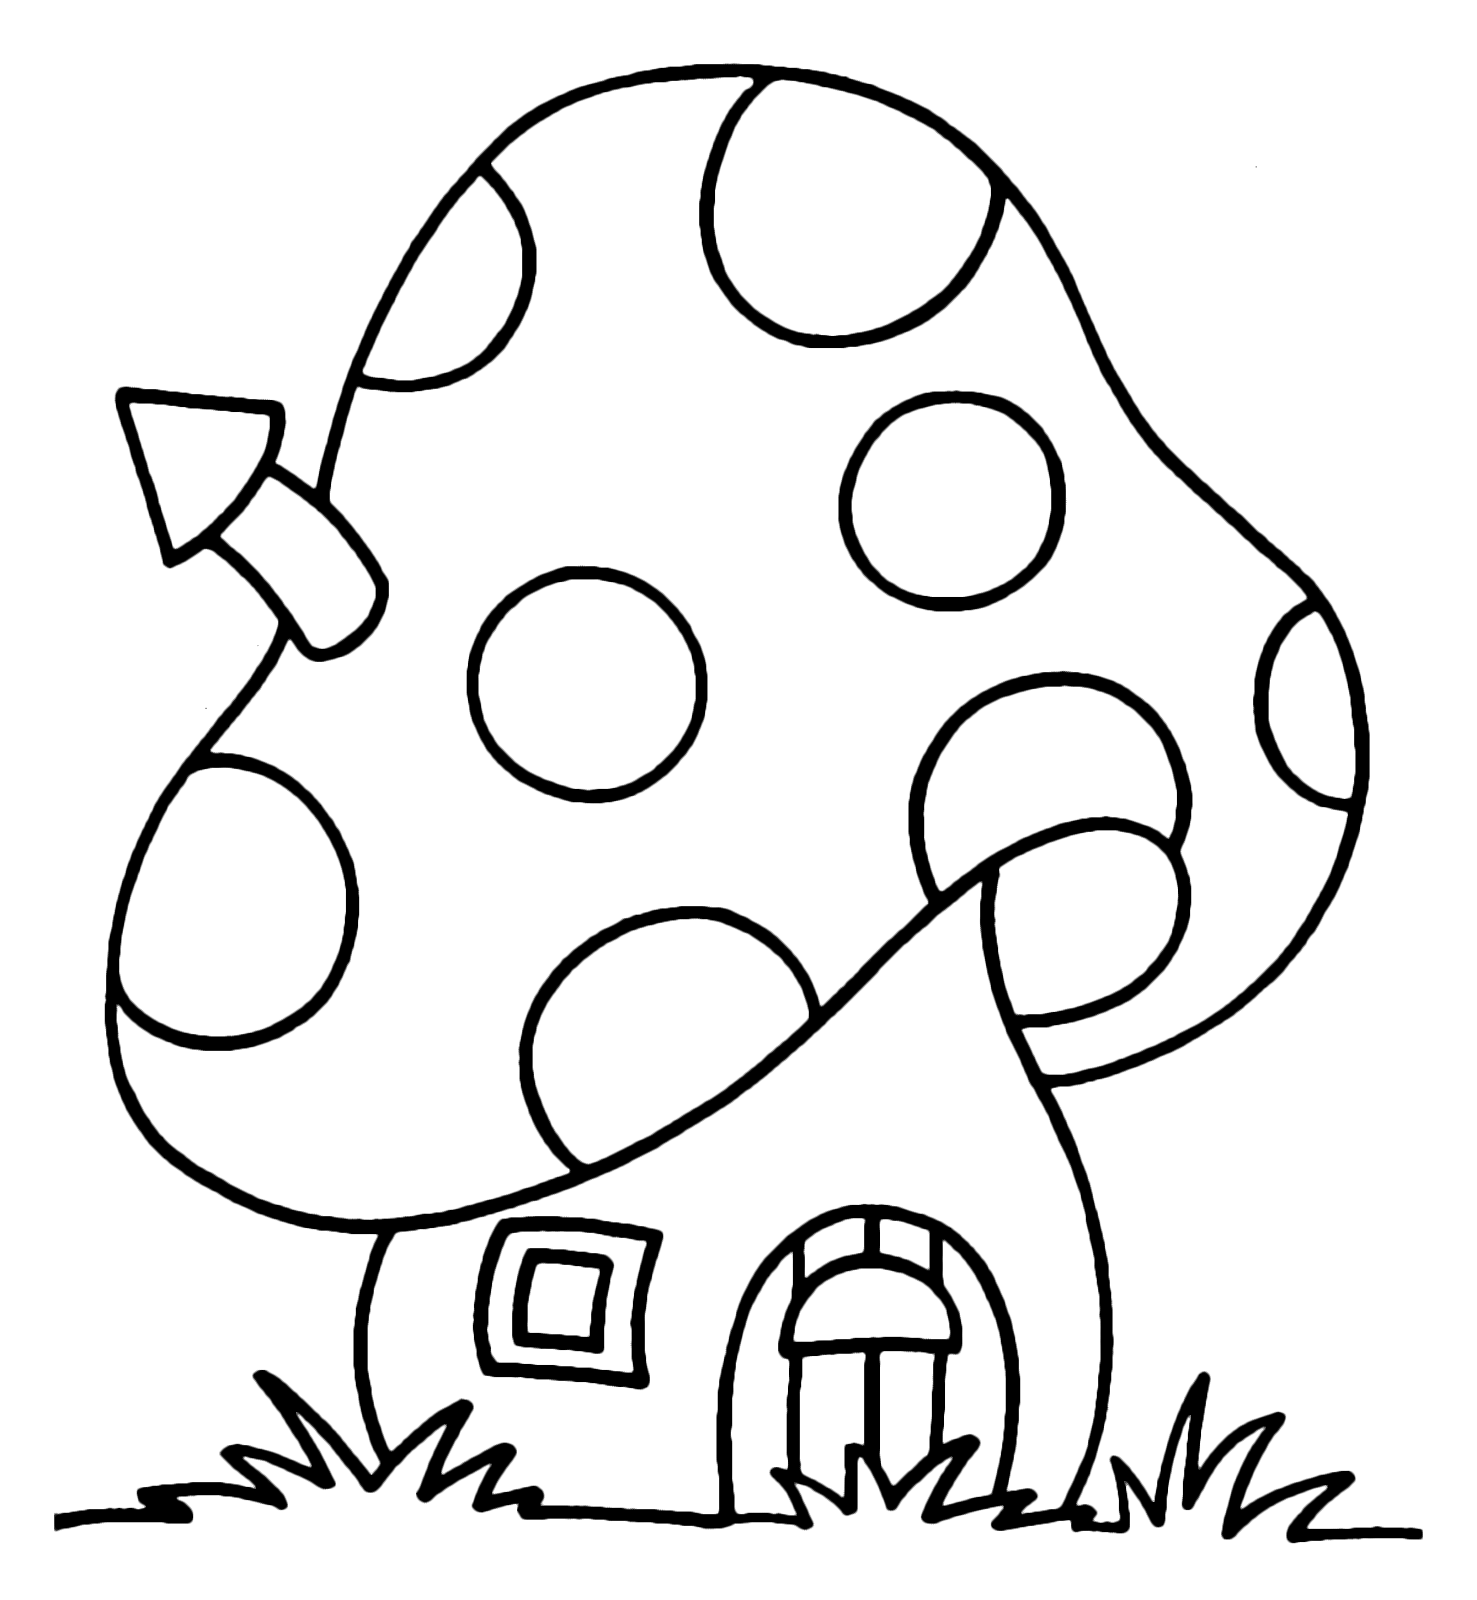 Coloring Rocks Coloring Pages Easy Coloring Pages Coloring For Kids